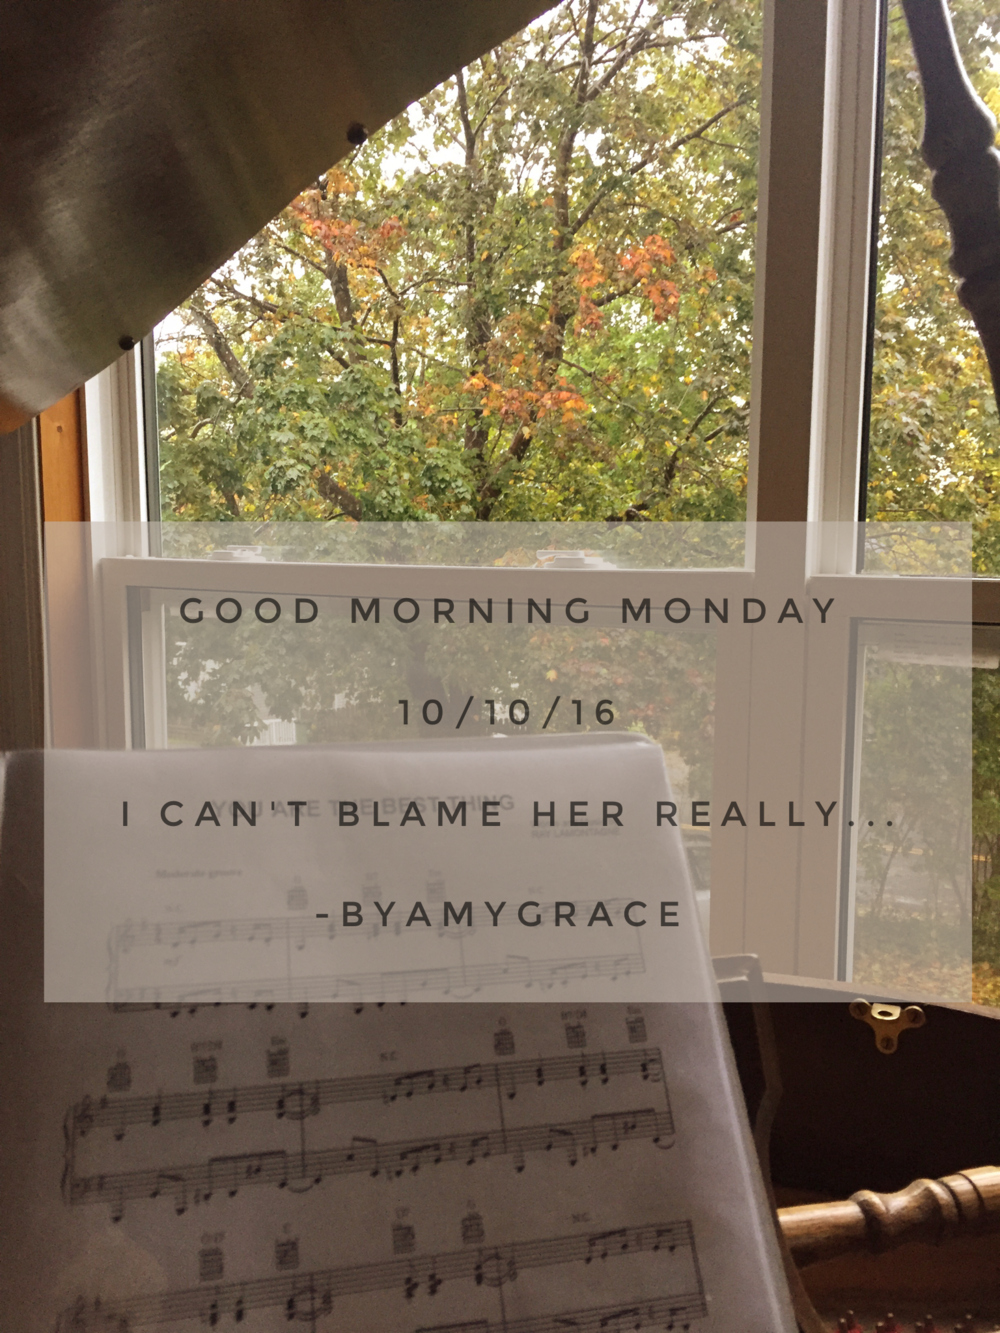 goodmorningmonday.10/10/16.byamygrace